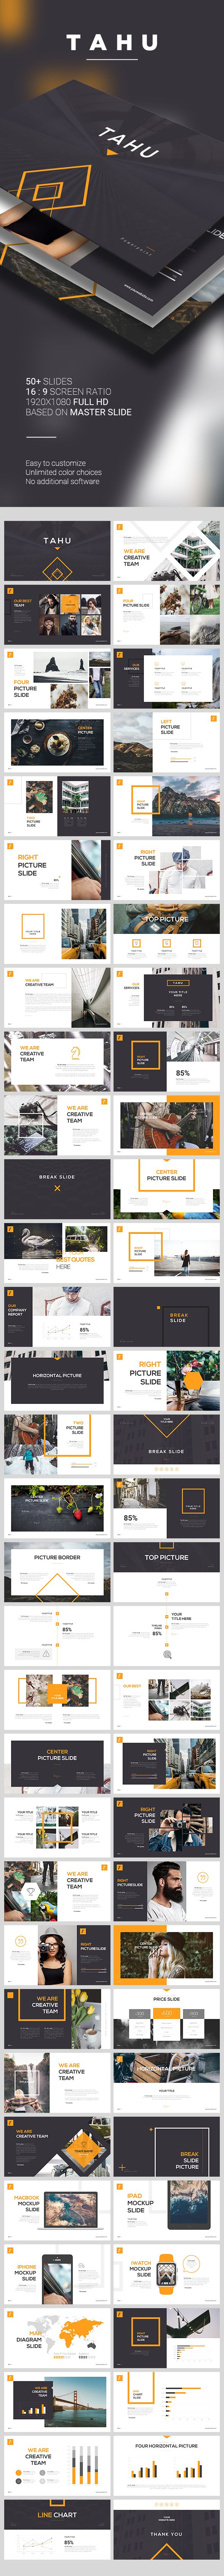 TAHU PowerPoint Template (PowerPoint Templates)